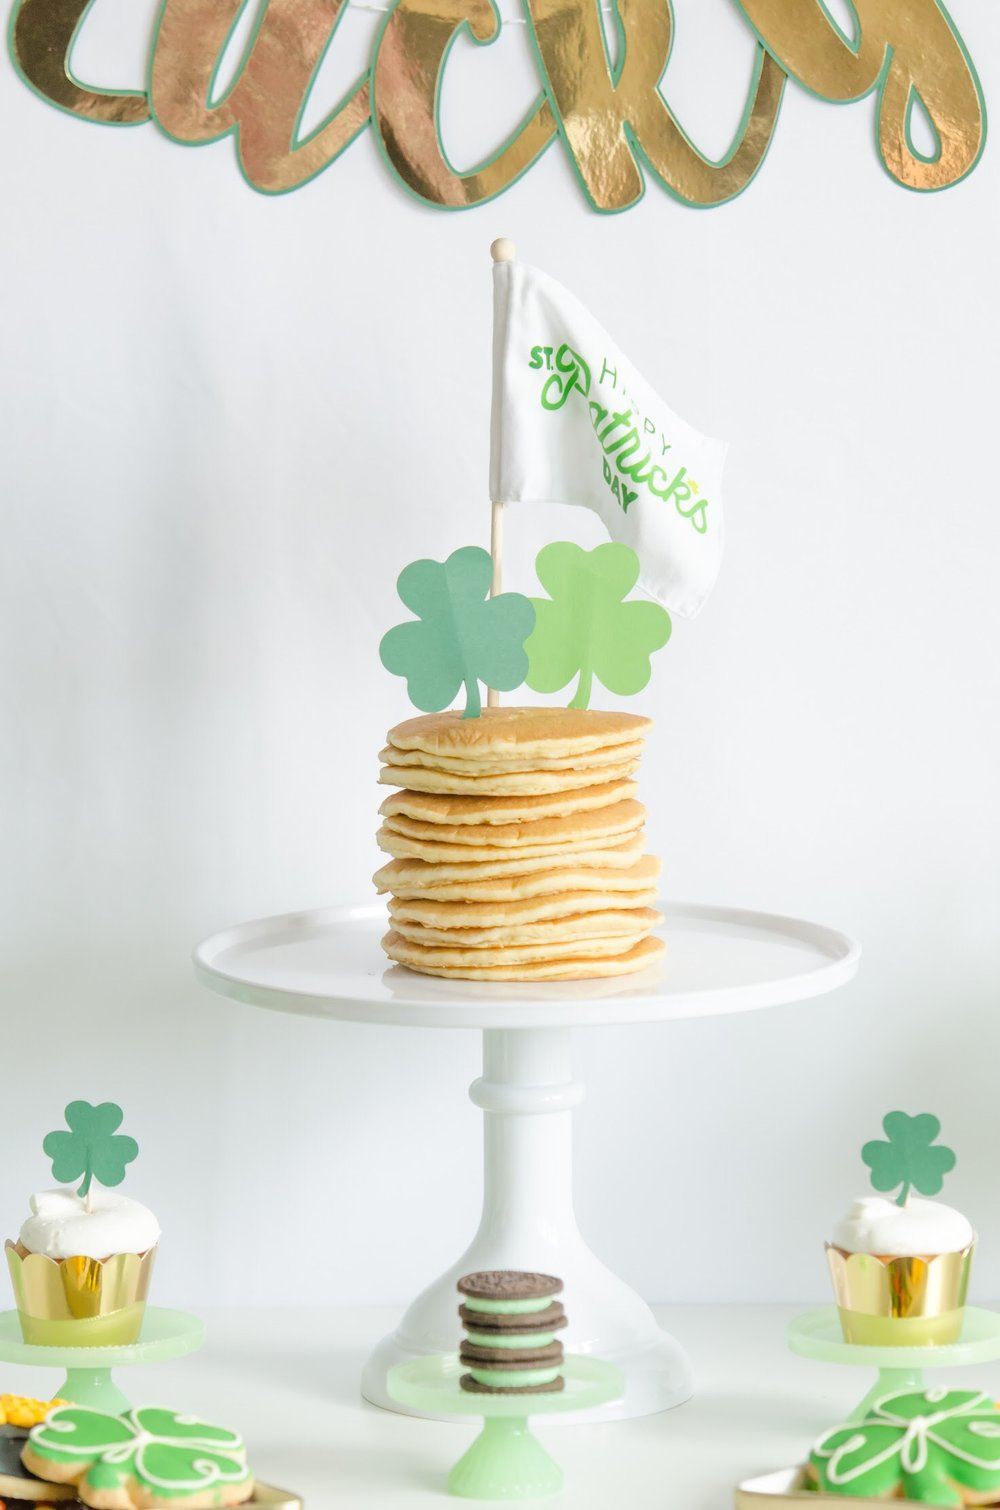 """Saint Patricks Day Breakfast Recipe: serve stacked pancakes on a cake stand, then add shamrock shaped cupcake toppers with a fun mini flag that says """"Happy St. Patrick's Day"""". Via Mint Event Design www.minteventdesign.com #partyideas #partydecorations #breakfastfood #saintpatricksday #stpatricksday #pancakes"""